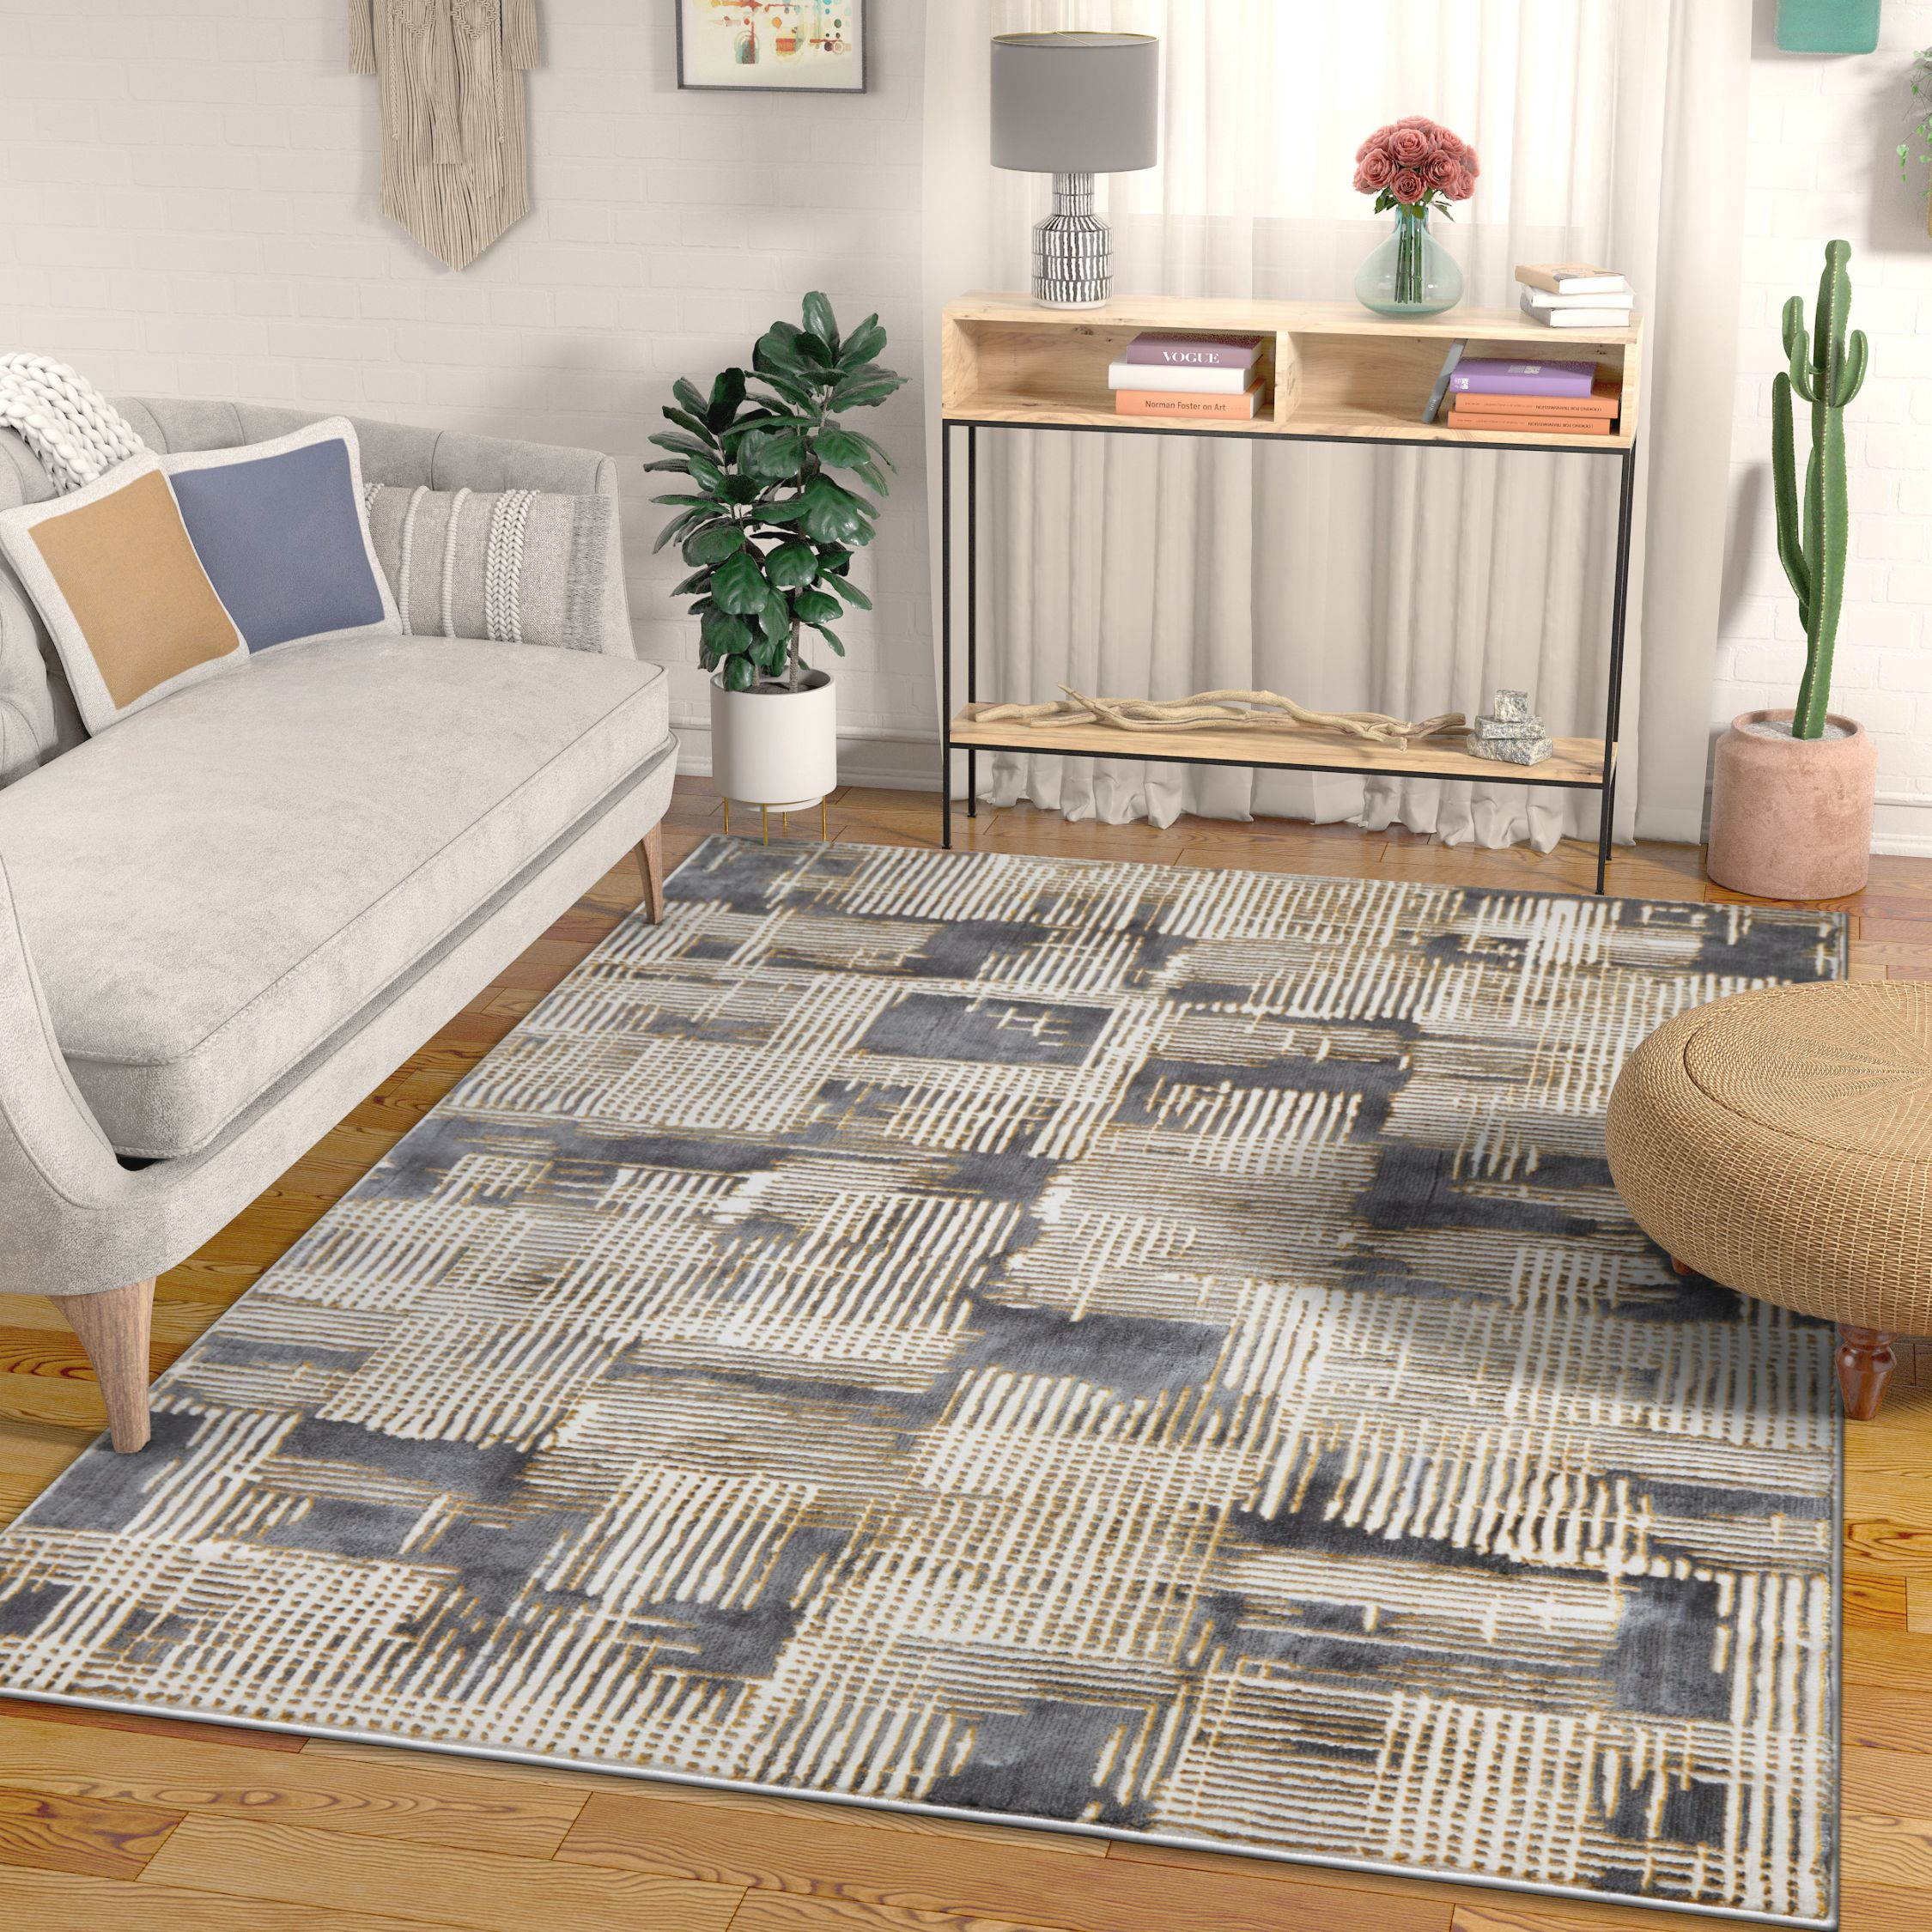 """Canny Grey & Yellow Modern Geometric High-Low Pile Area Rug 3x5 (3'11"""" x 5'3"""") Abstract Washed Out Boxes Carpet"""